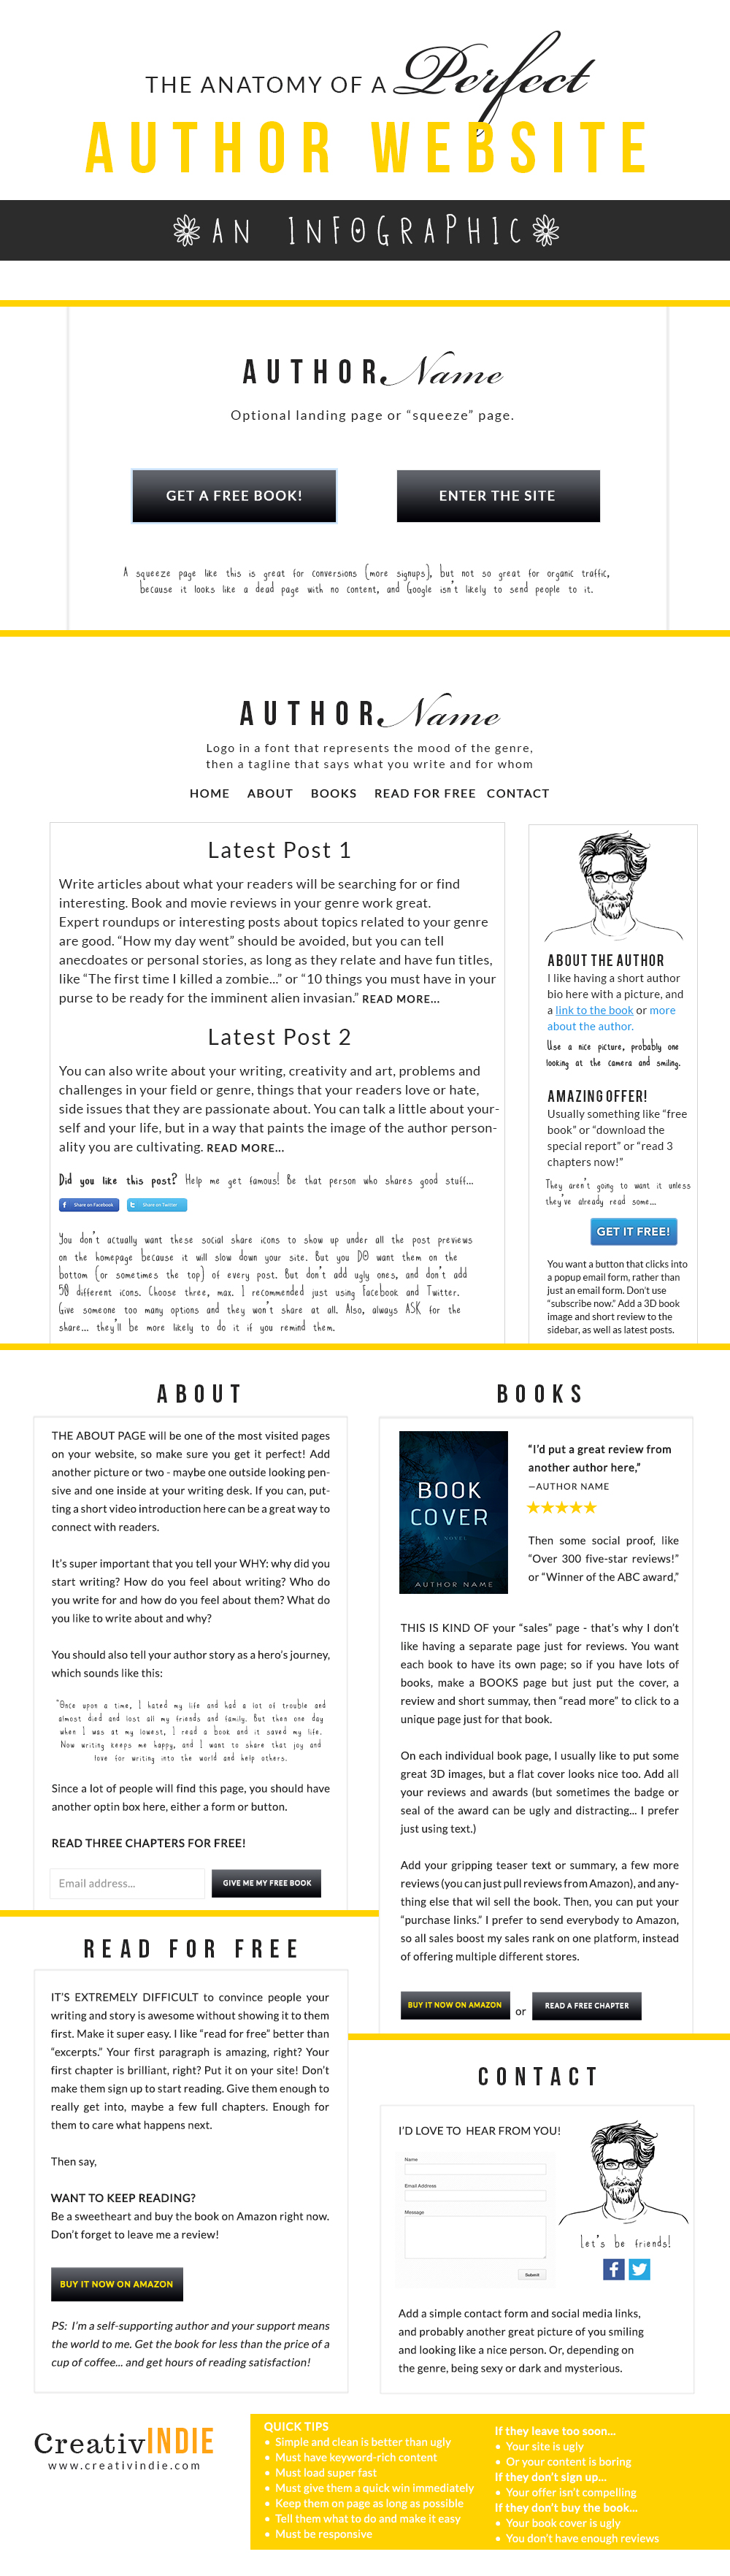 The anatomy of a perfect author website infographic a marketing the anatomy of a perfect author website infographic a marketing blueprint for indie authors malvernweather Gallery